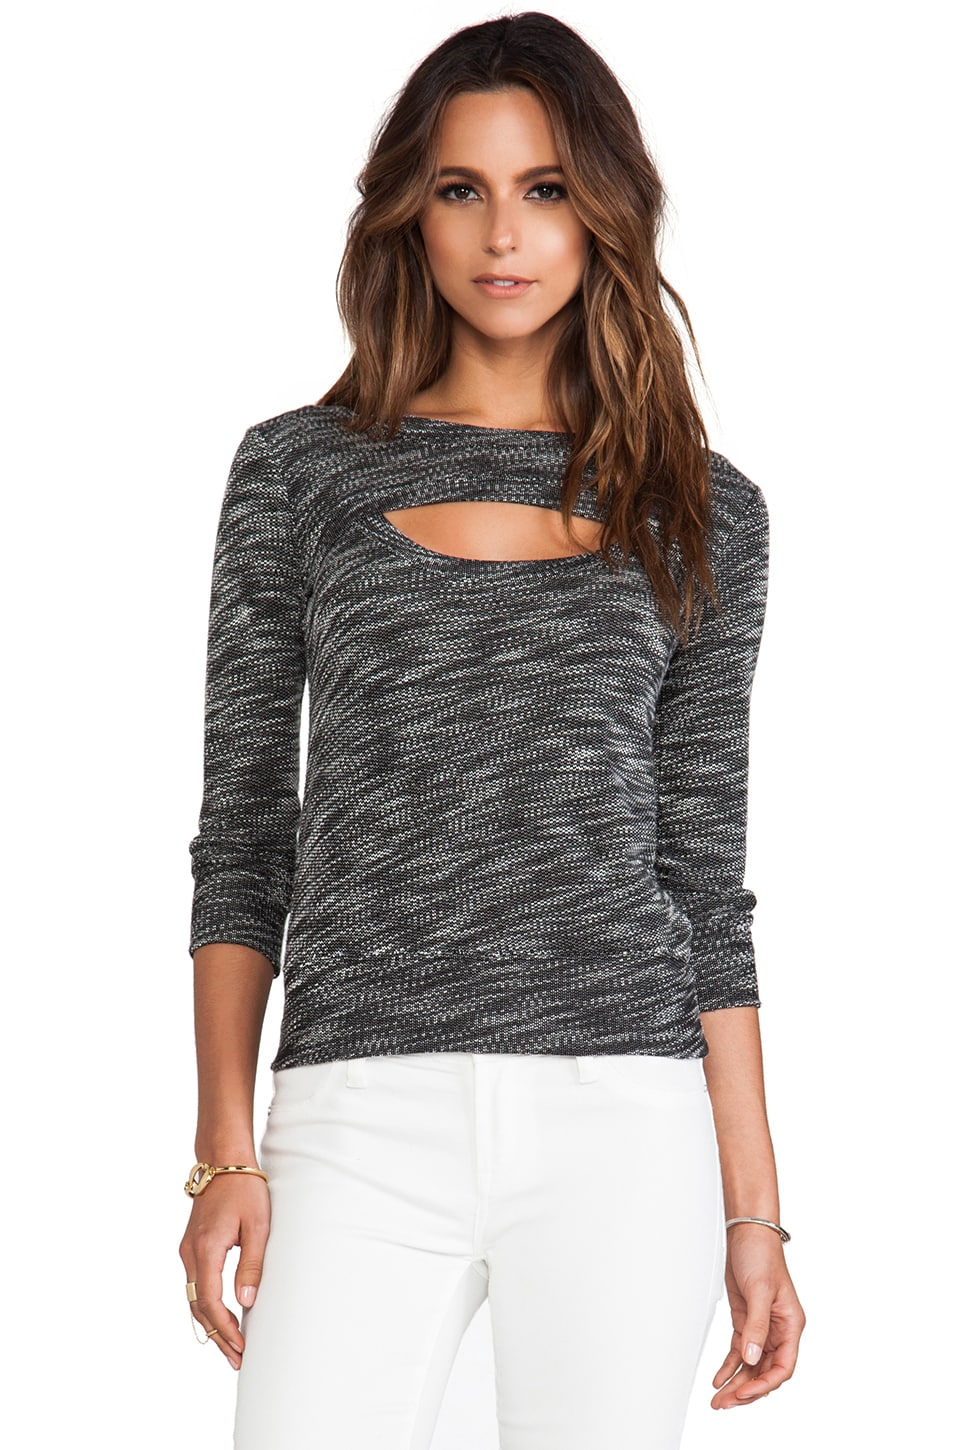 MONROW Luxe French Terry Open Sweatshirt in Black